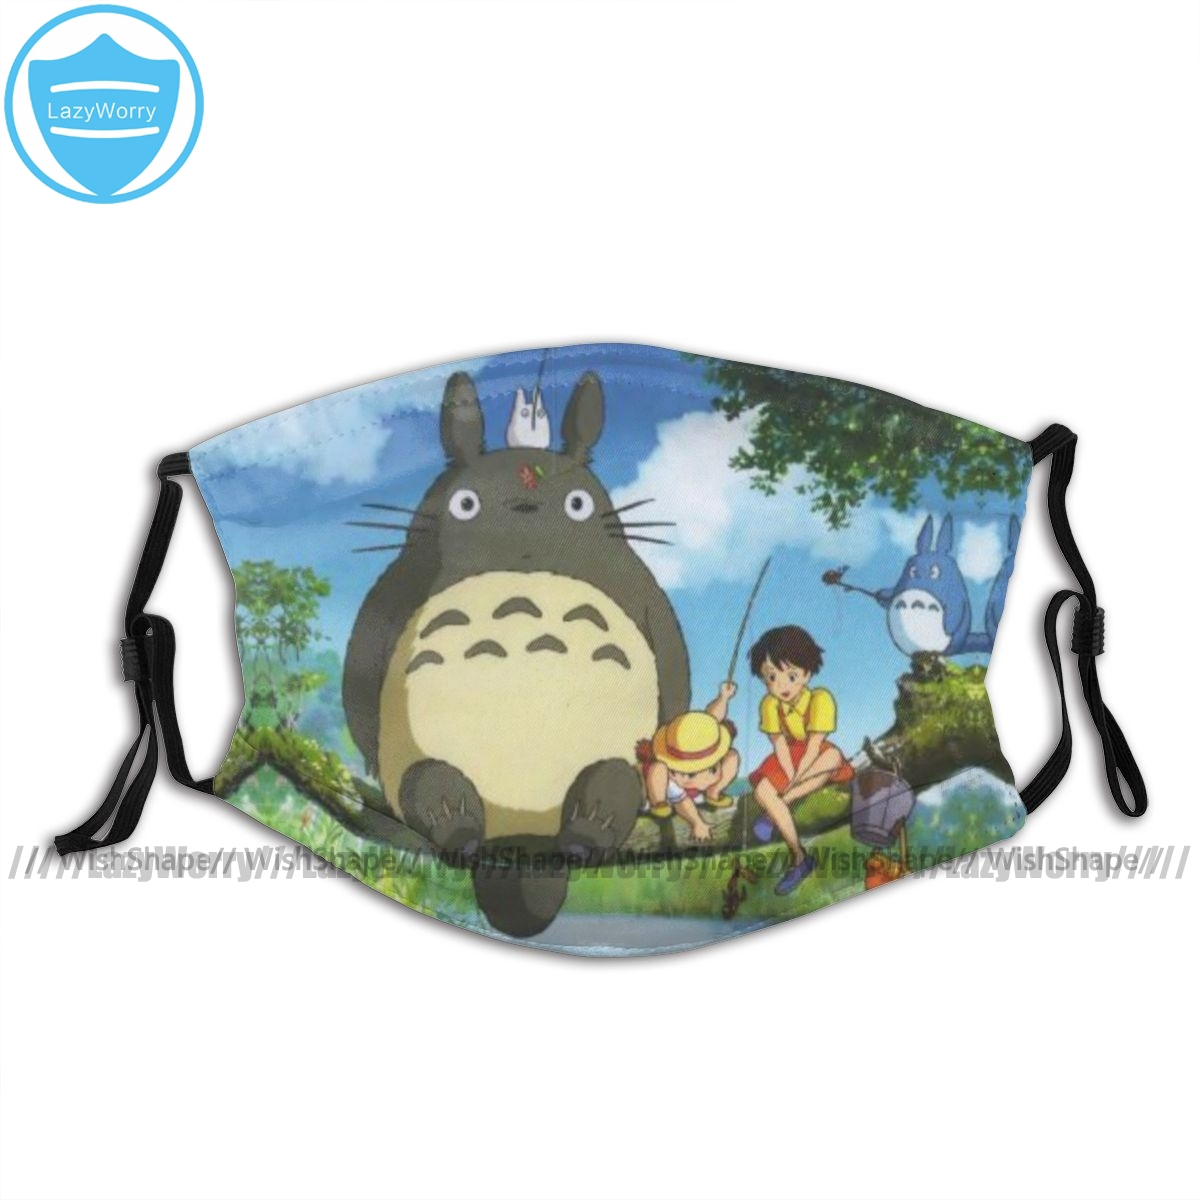 Ghibli Mouth Face Mask Totoro Facial Mask Fashion Funny With 2 Filters For Adult